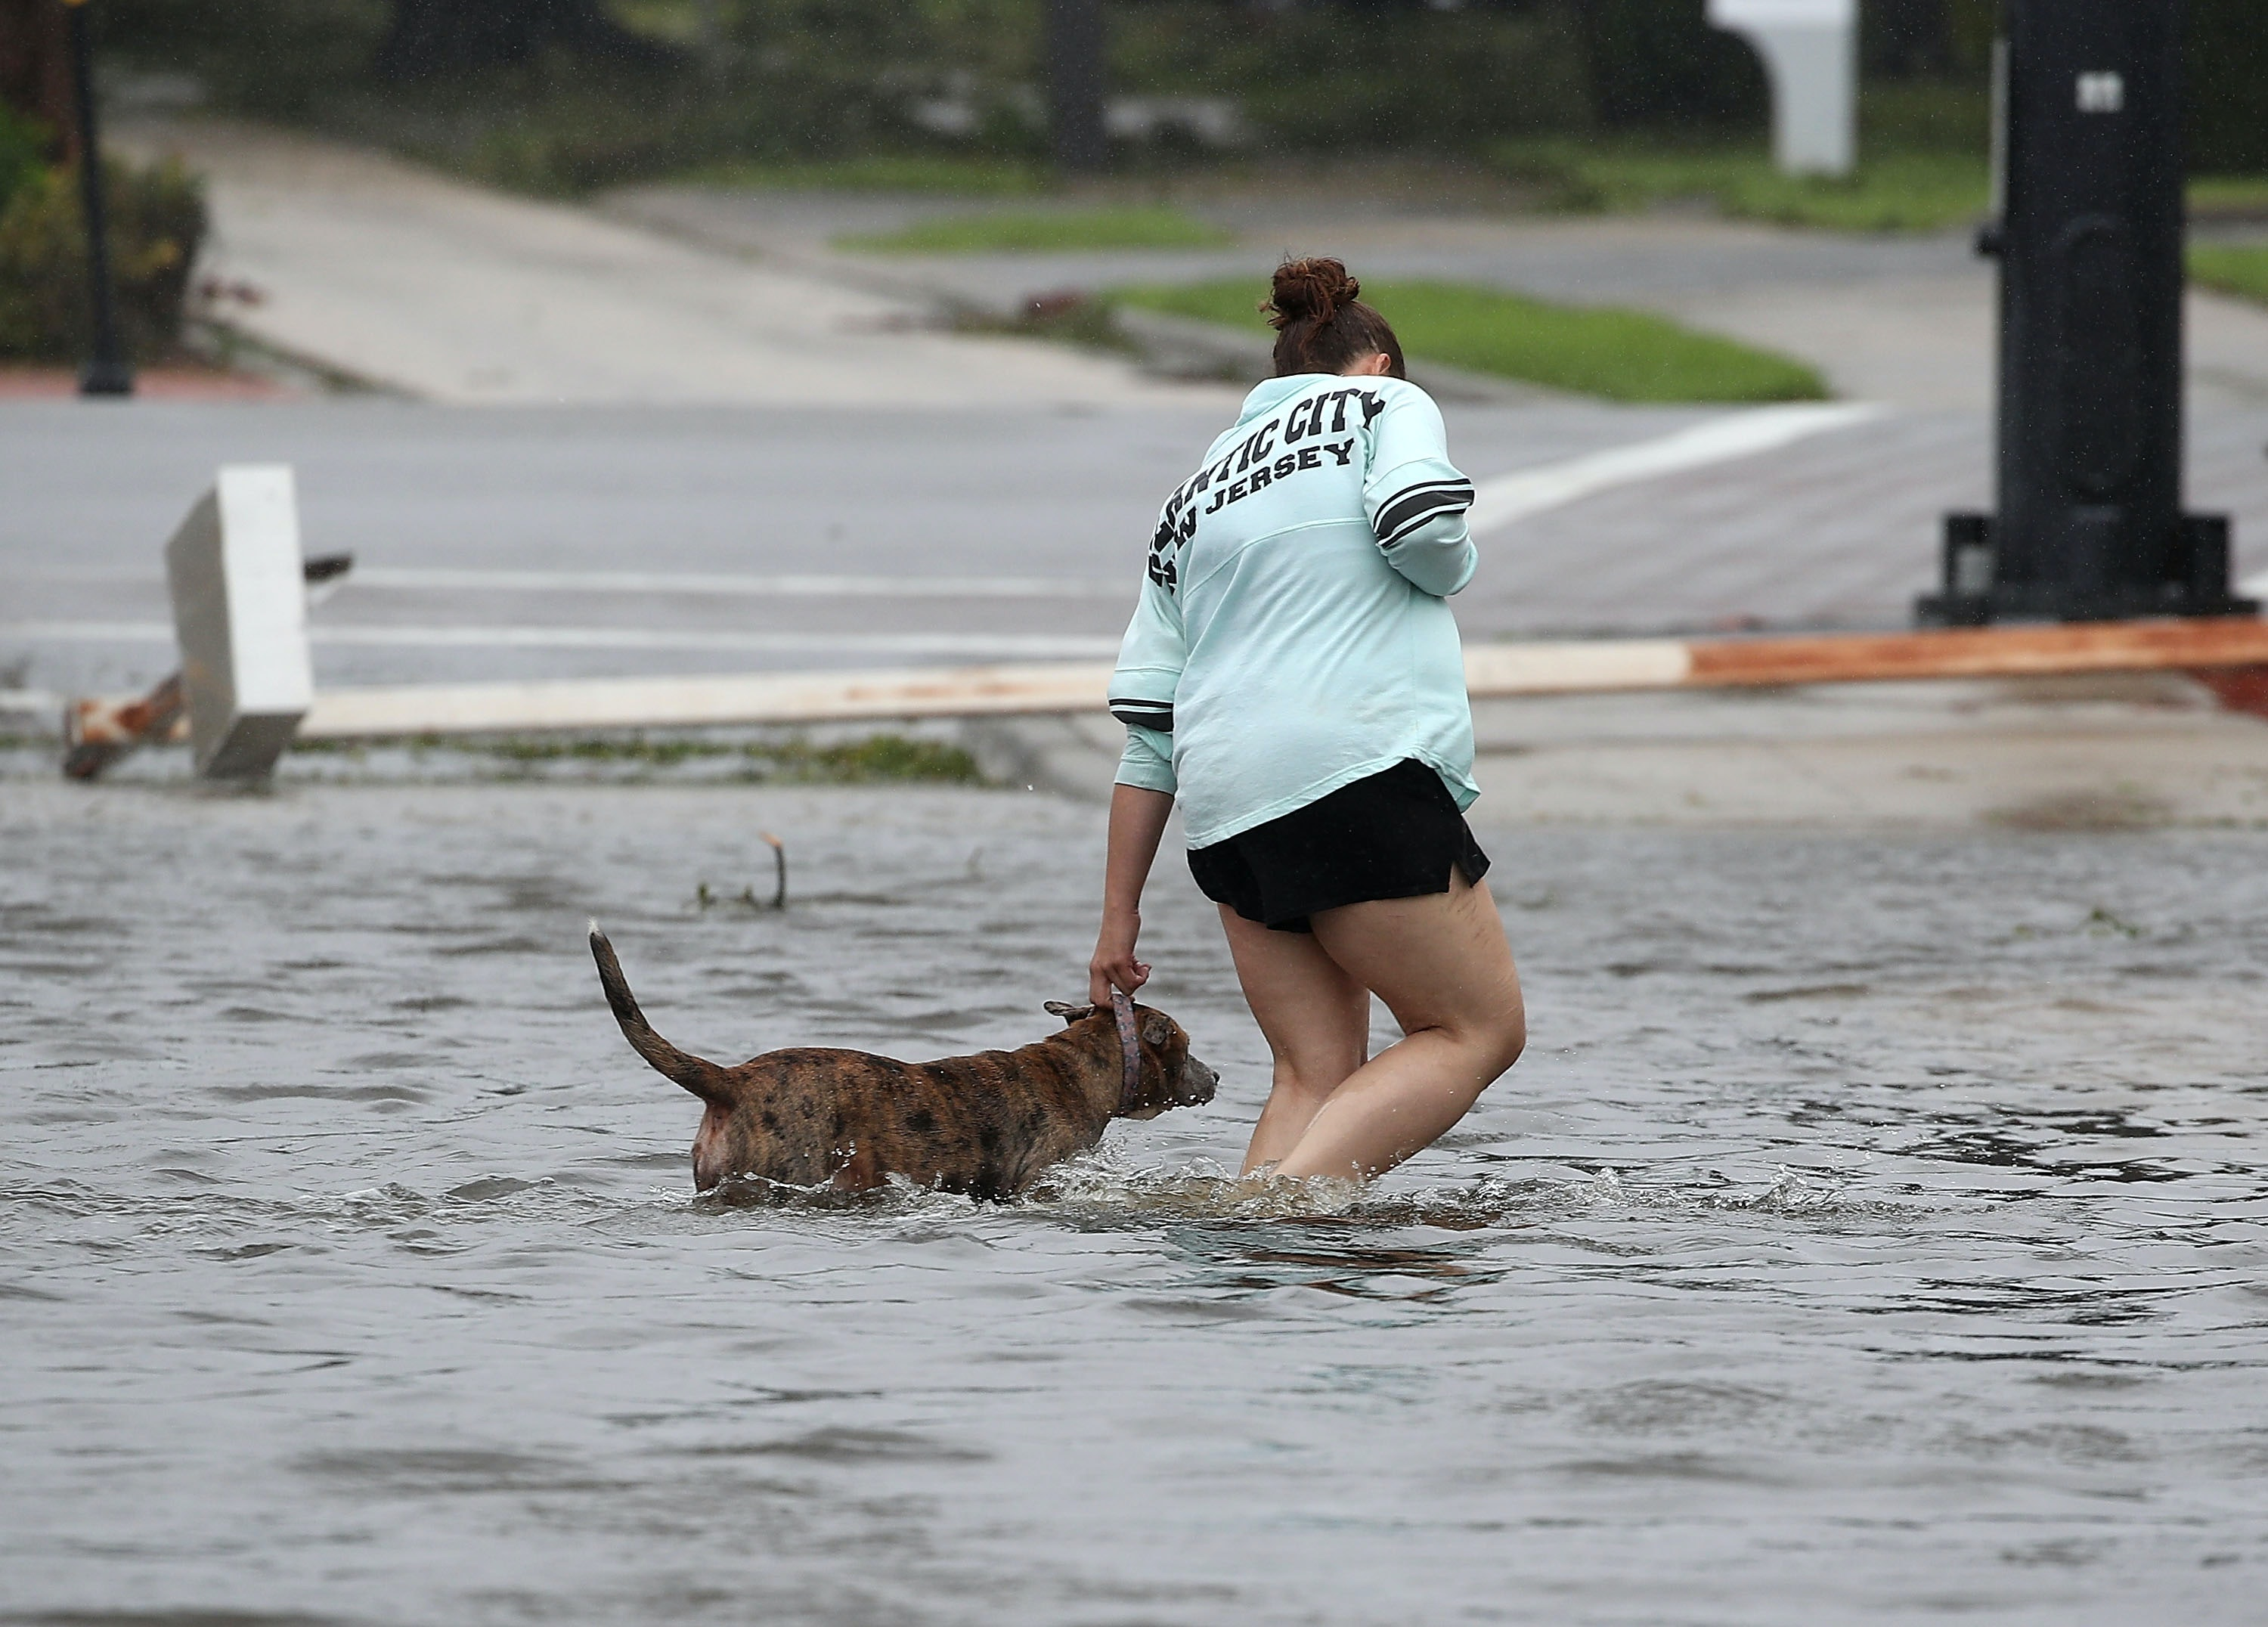 Local shelter will be taking in displaced dogs from Harvey